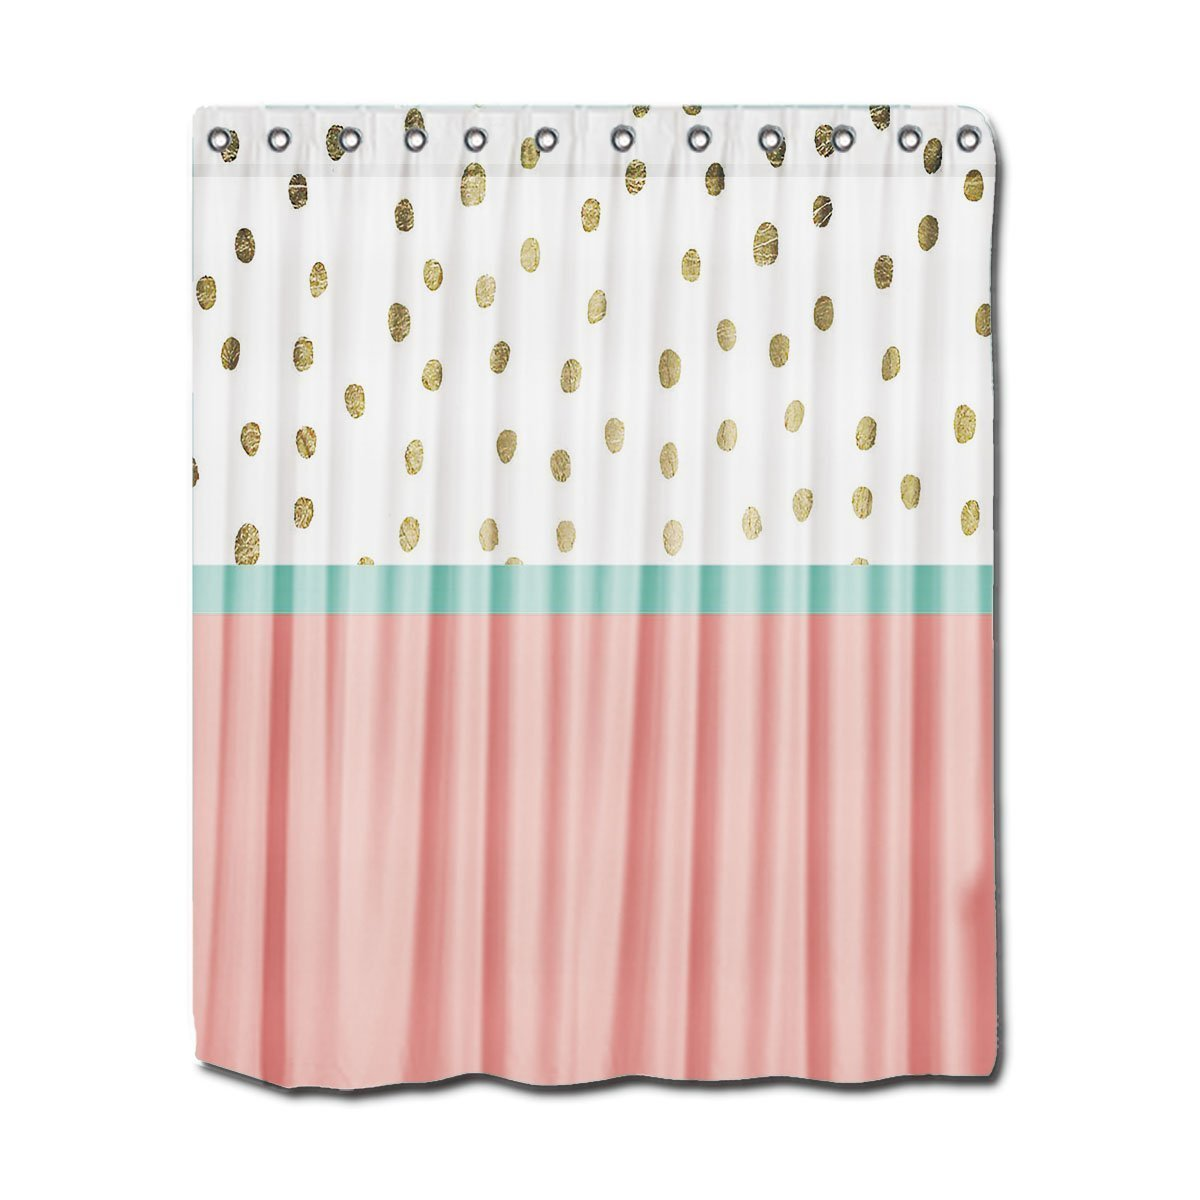 yyt shower curtains coral teal color block gold foil polka dots shower curtain stocked